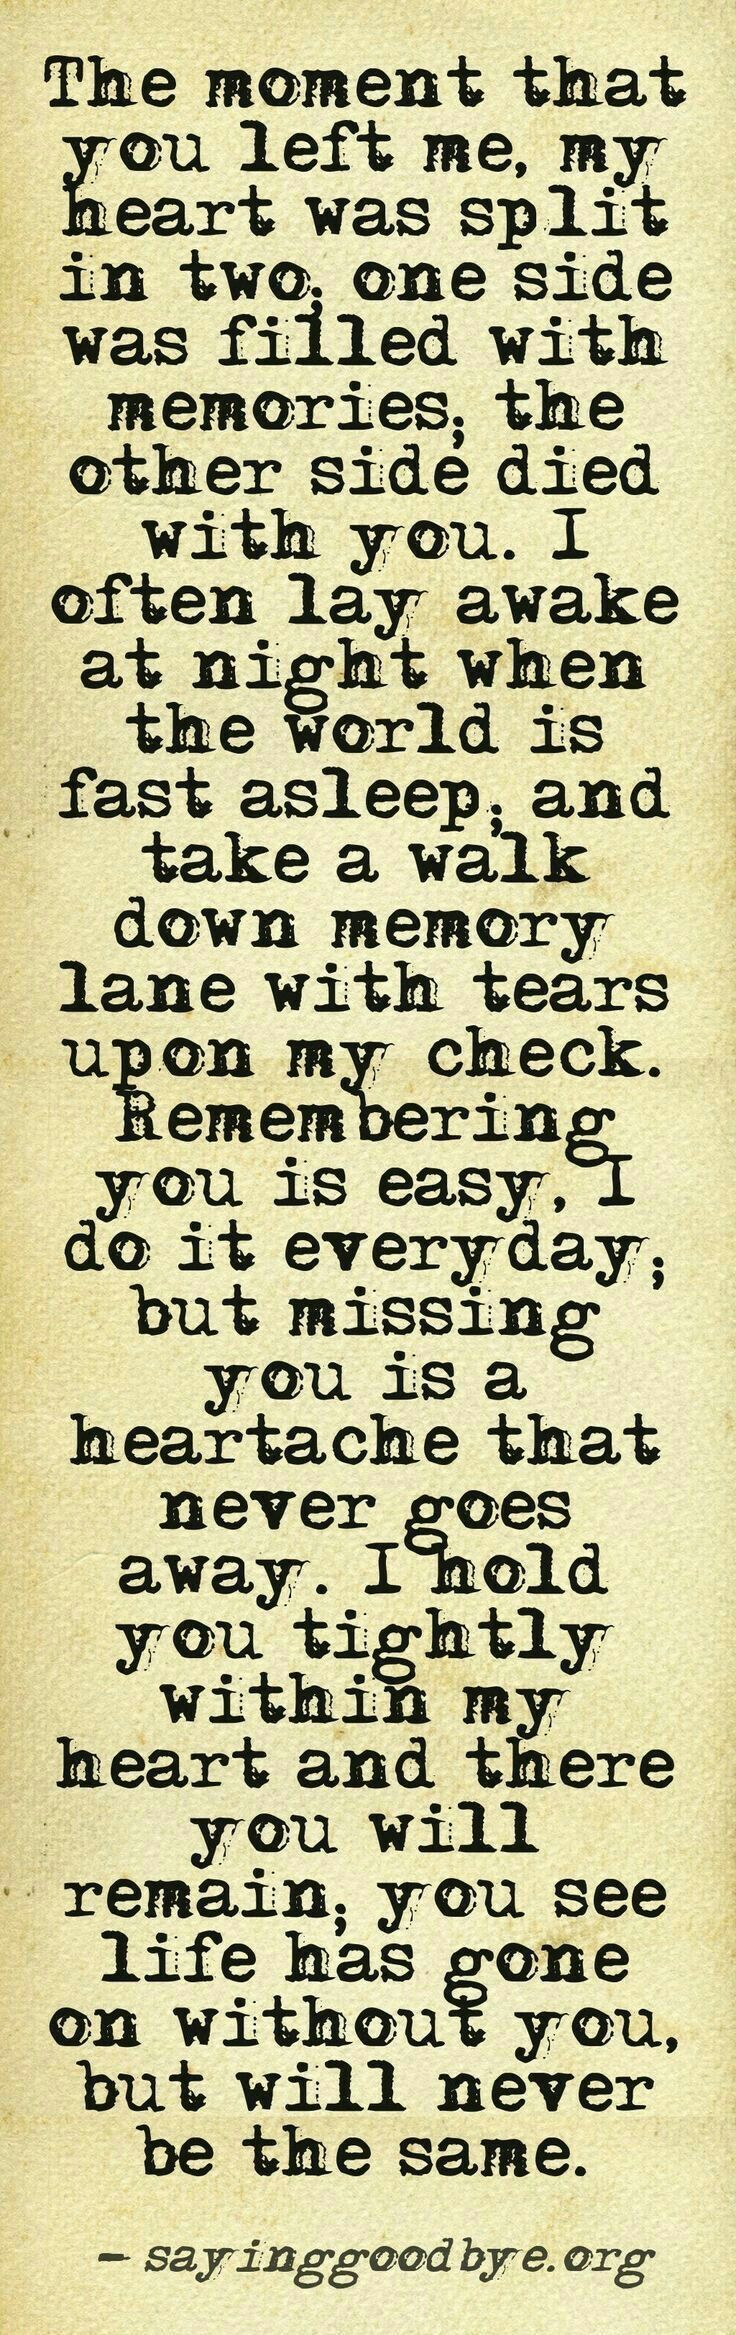 Heaven Quotes For Loved Ones 51 Best Jdc.love Of A Life Time Images On Pinterest  Words